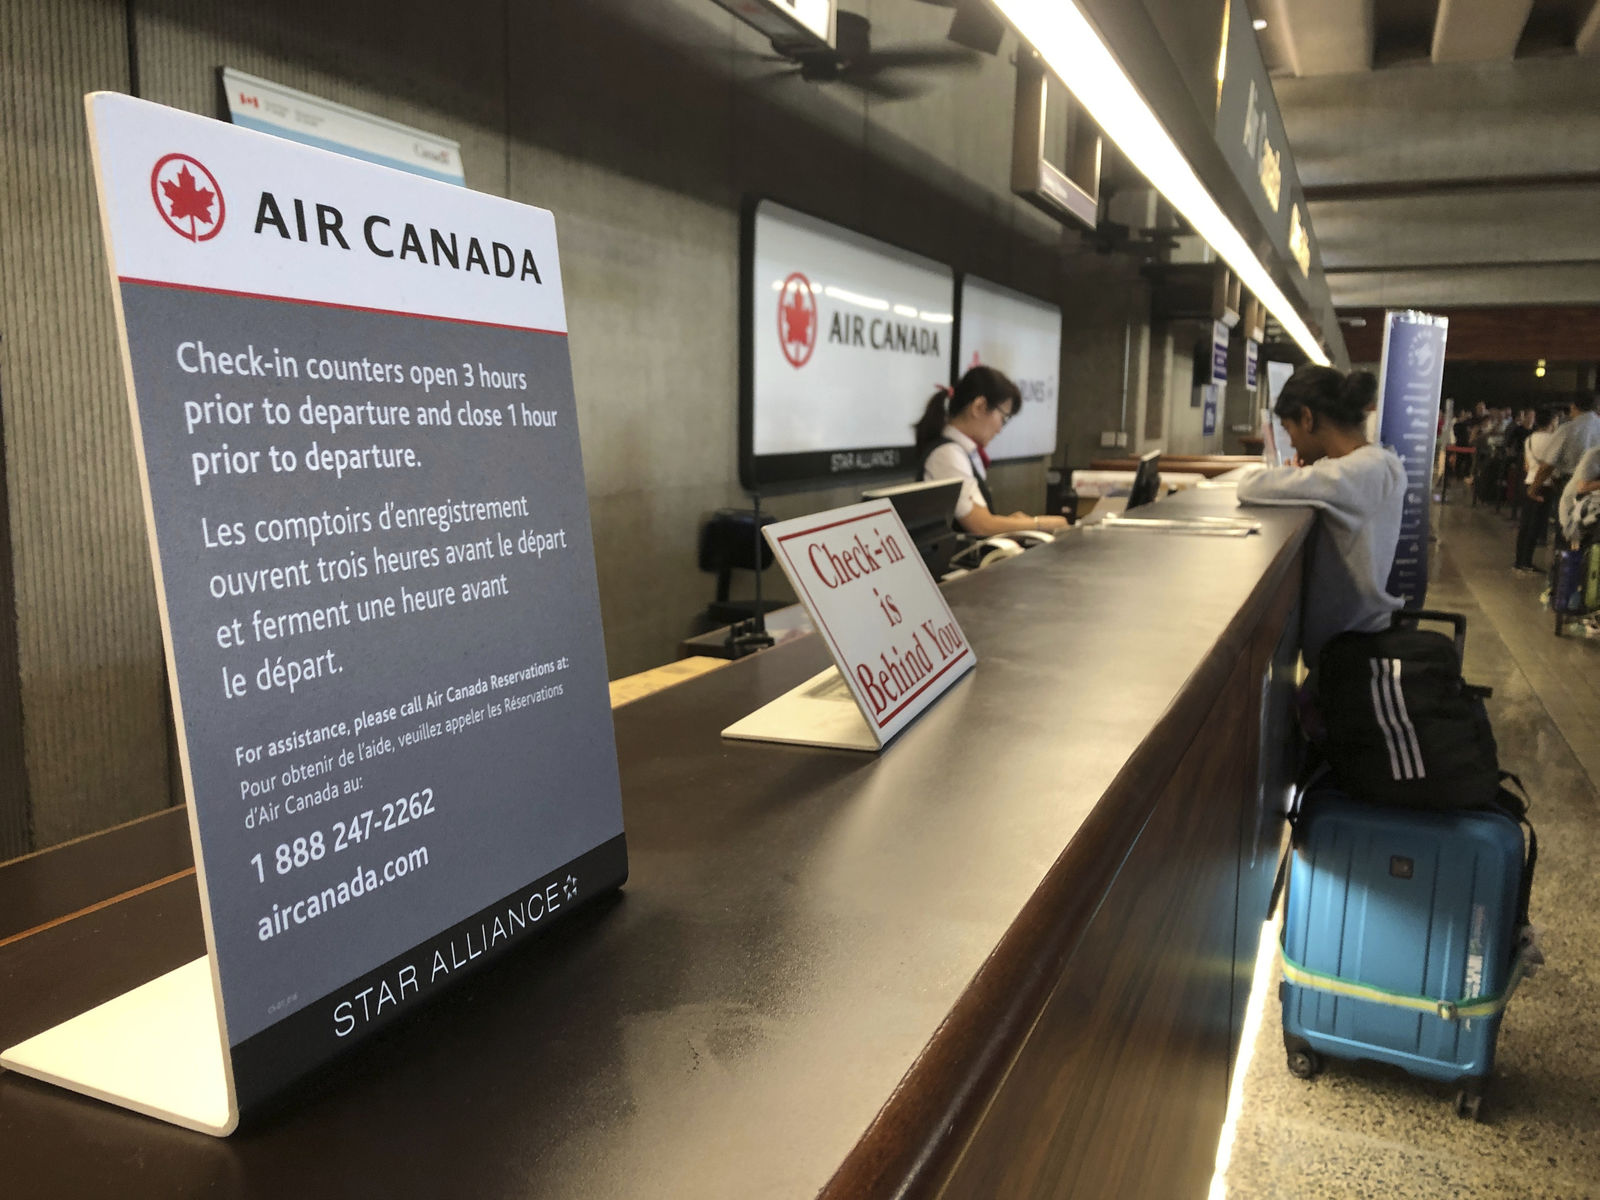 Passengers from an Australia-bound Air Canada flight diverted to Honolulu Thursday, July 11, 2019, after about 35 people were injured during turbulence, stand in line at the Air Canada counter at Daniel K. Inouye International Airport to rebook flights. (AP Photo/Caleb Jones)